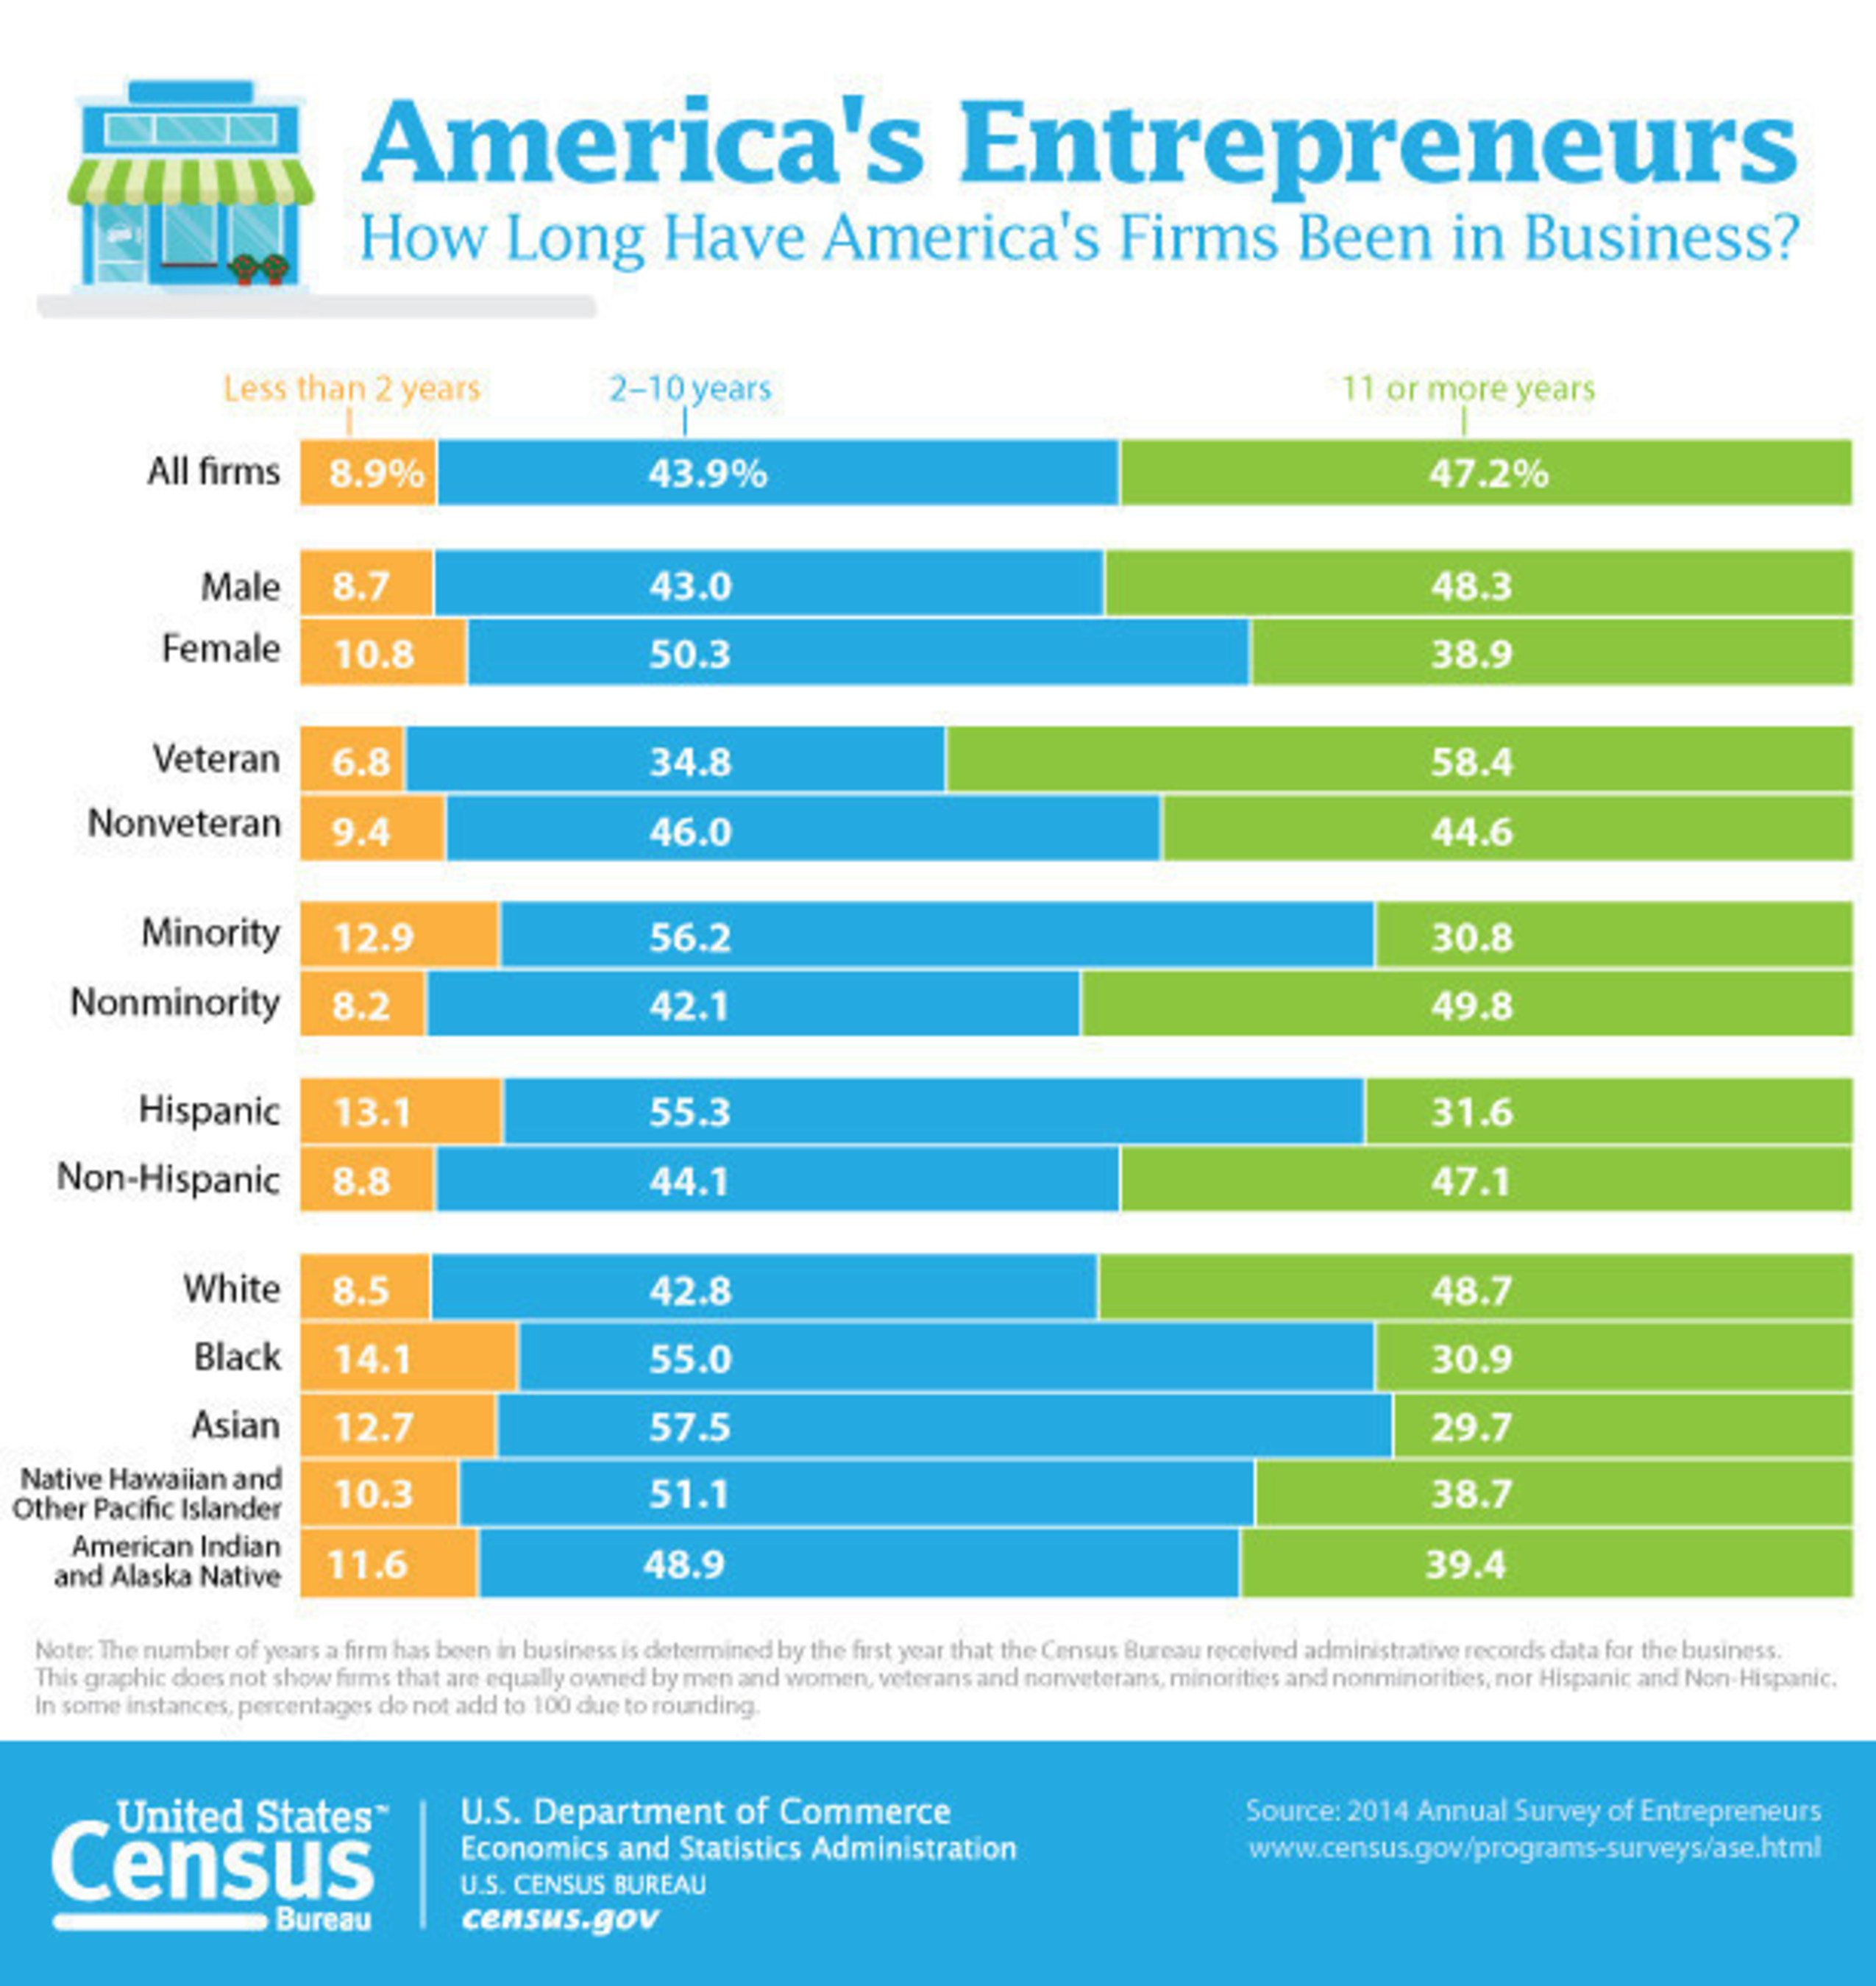 This graphic gives a snapshot of the number of years firms have been in business by gender, race, ethnicity and veteran status.